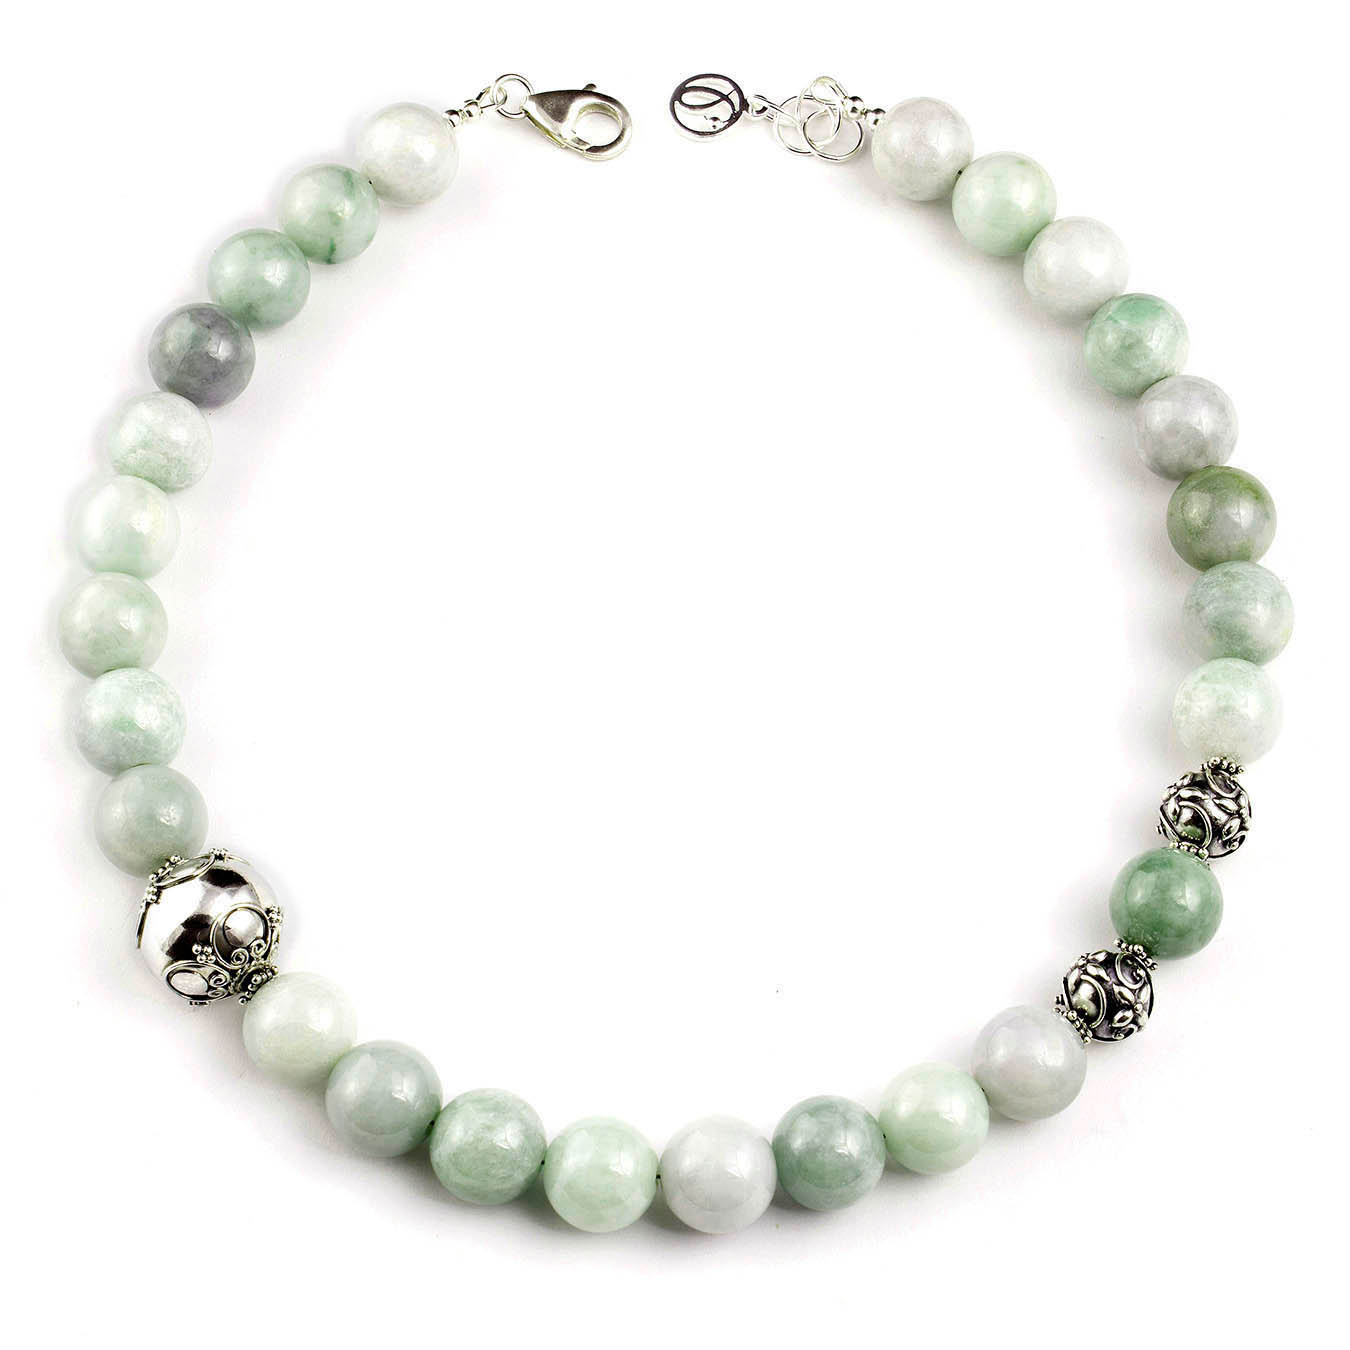 Handcrafted classic bead jewelry made with Burma Jade and Bali Silver